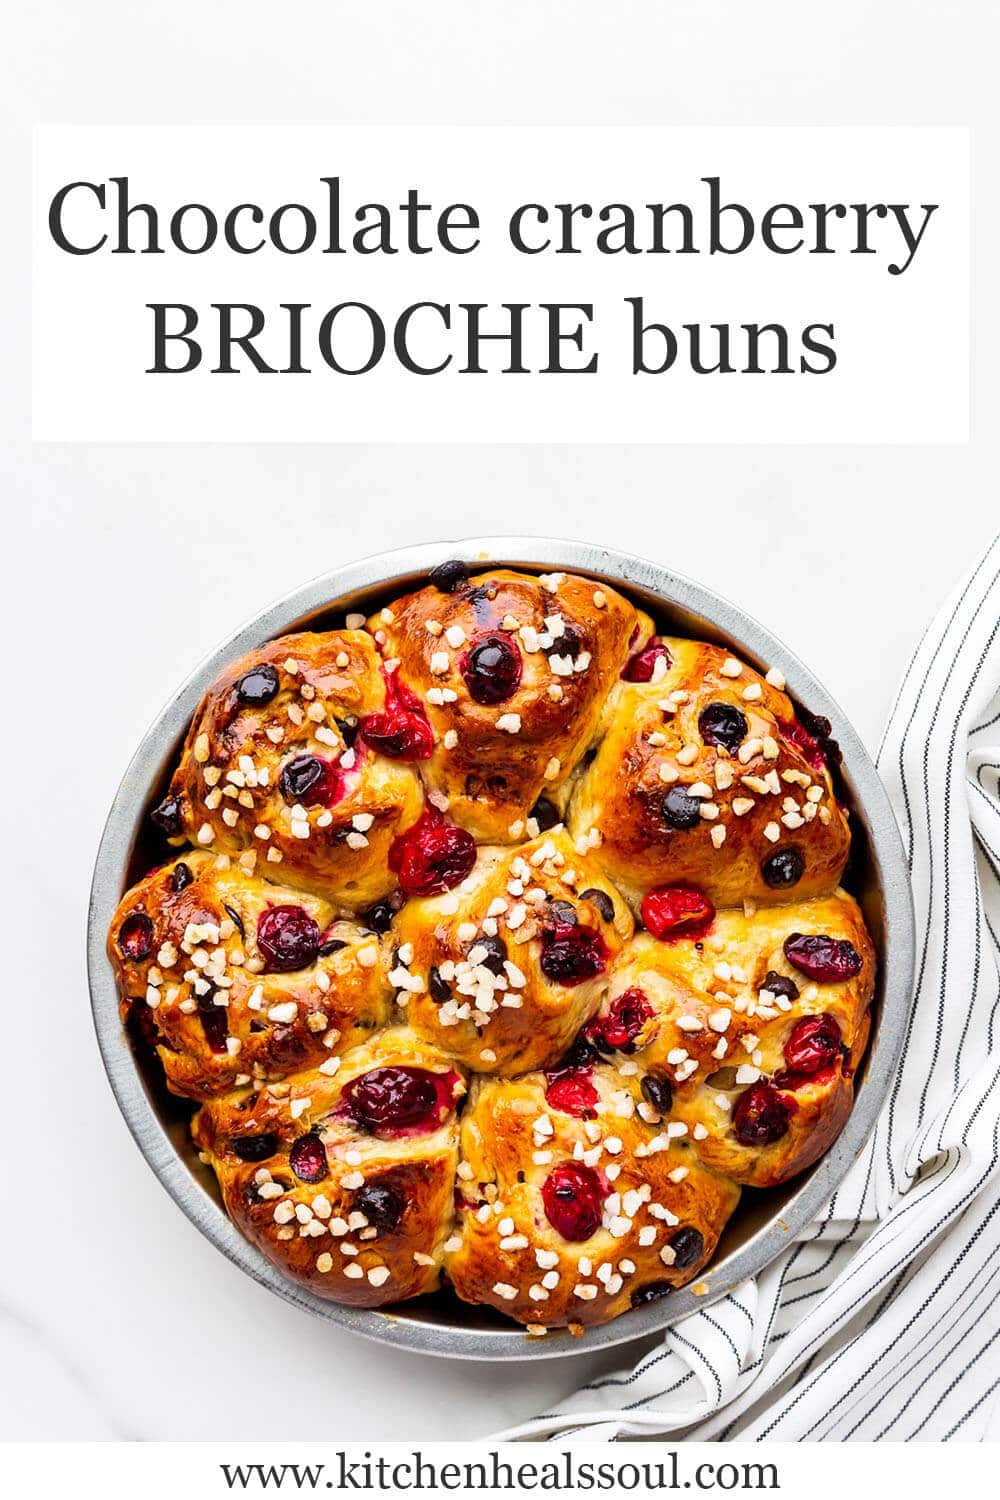 Chocolate cranberry brioche buns in a cake pan, freshly baked.